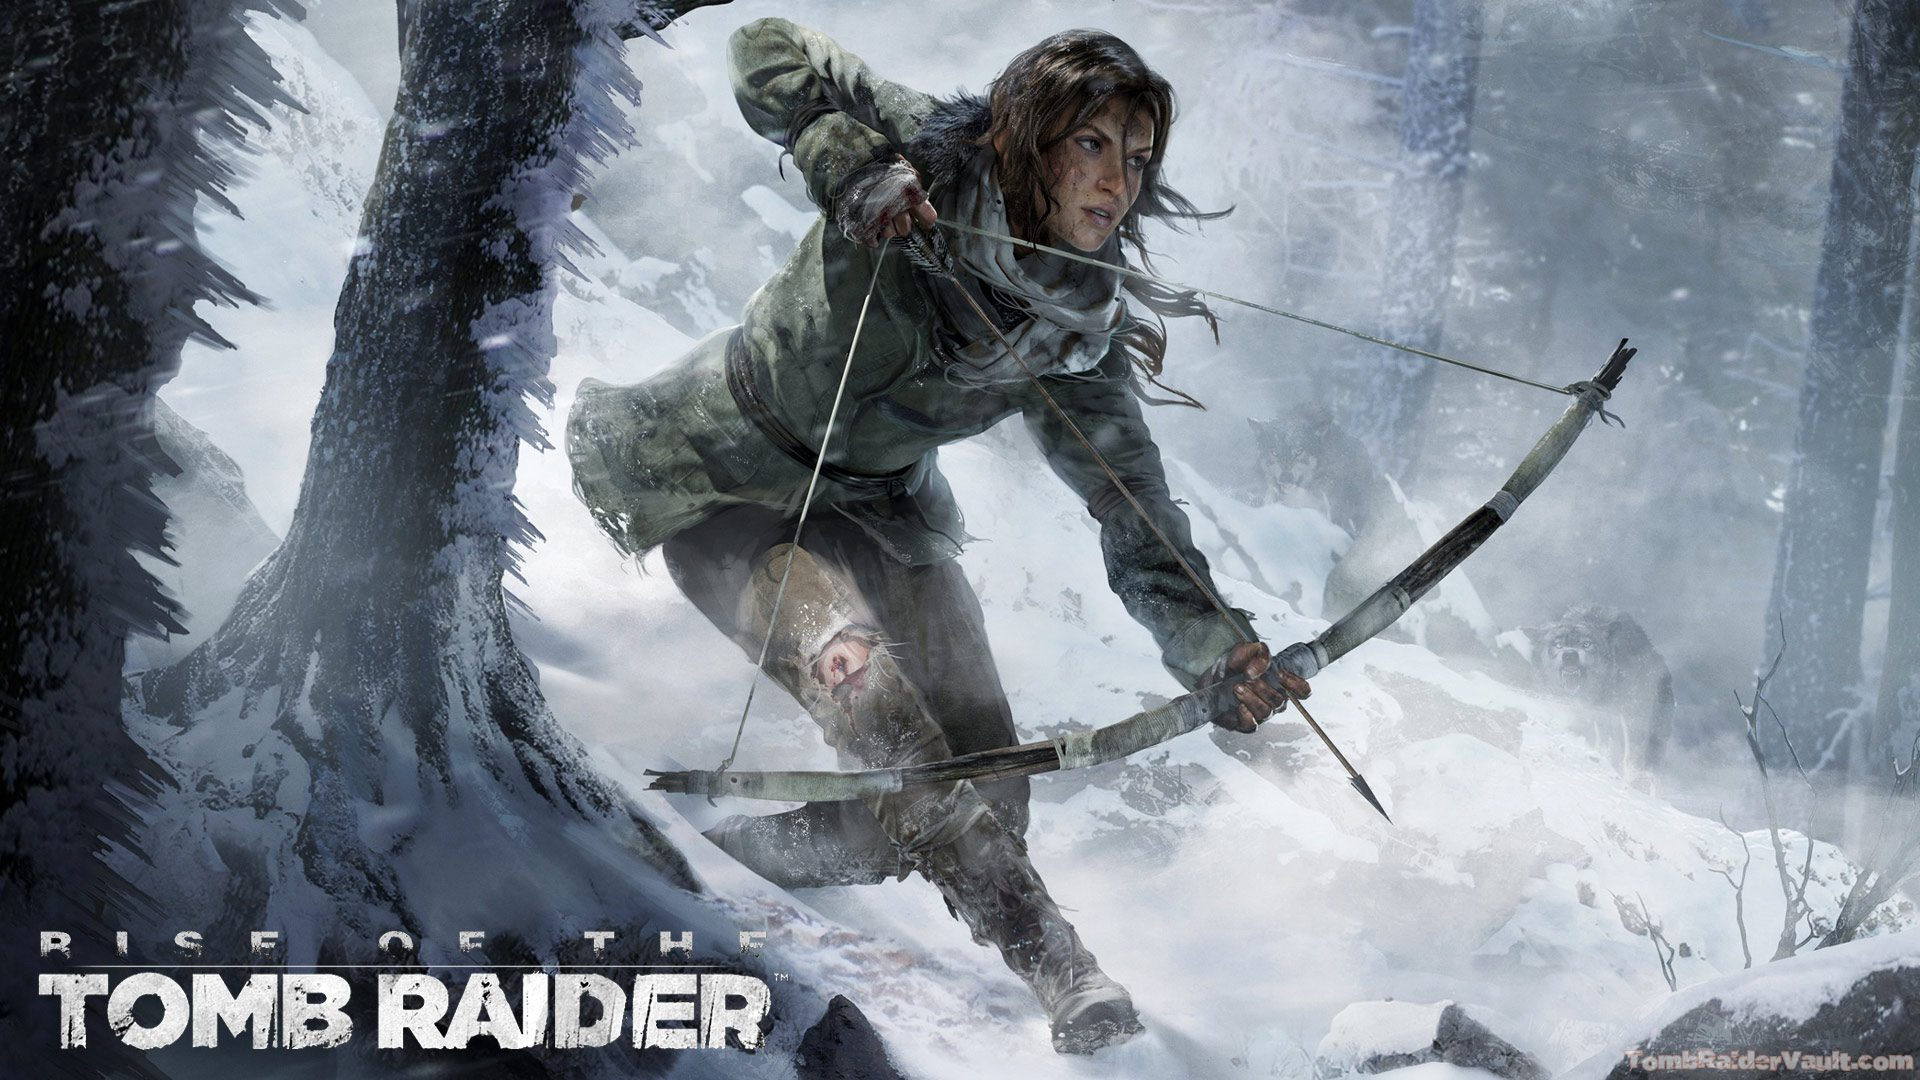 Rise Of The Tomb Raider , HD Wallpaper & Backgrounds